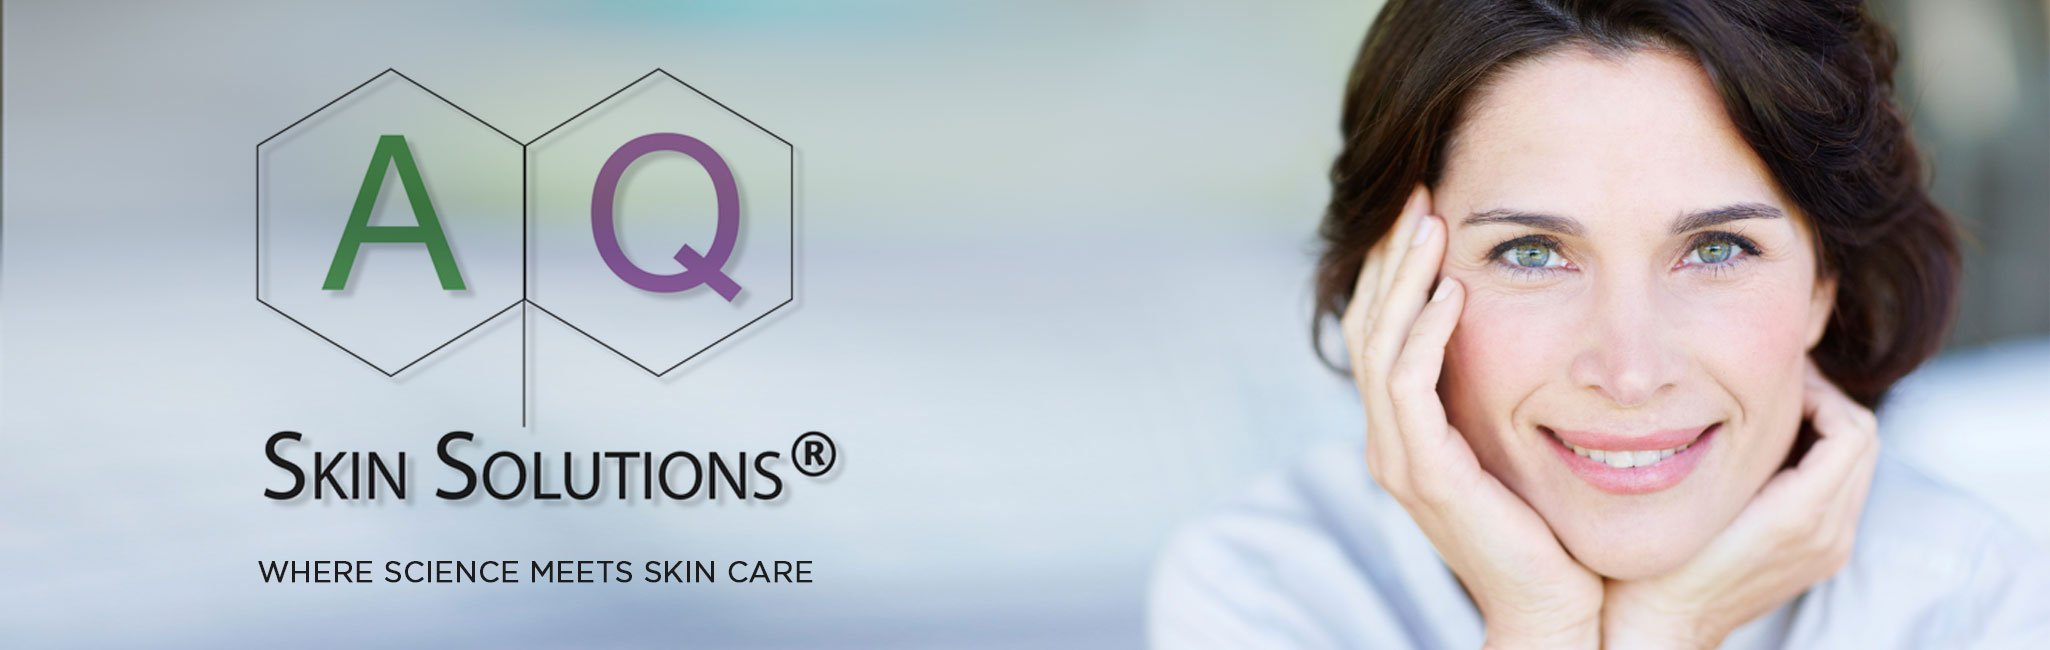 header blog, AQ Skin Solutions - now available at MASC Somerset Surgery | Plastic Surgery Somerset West